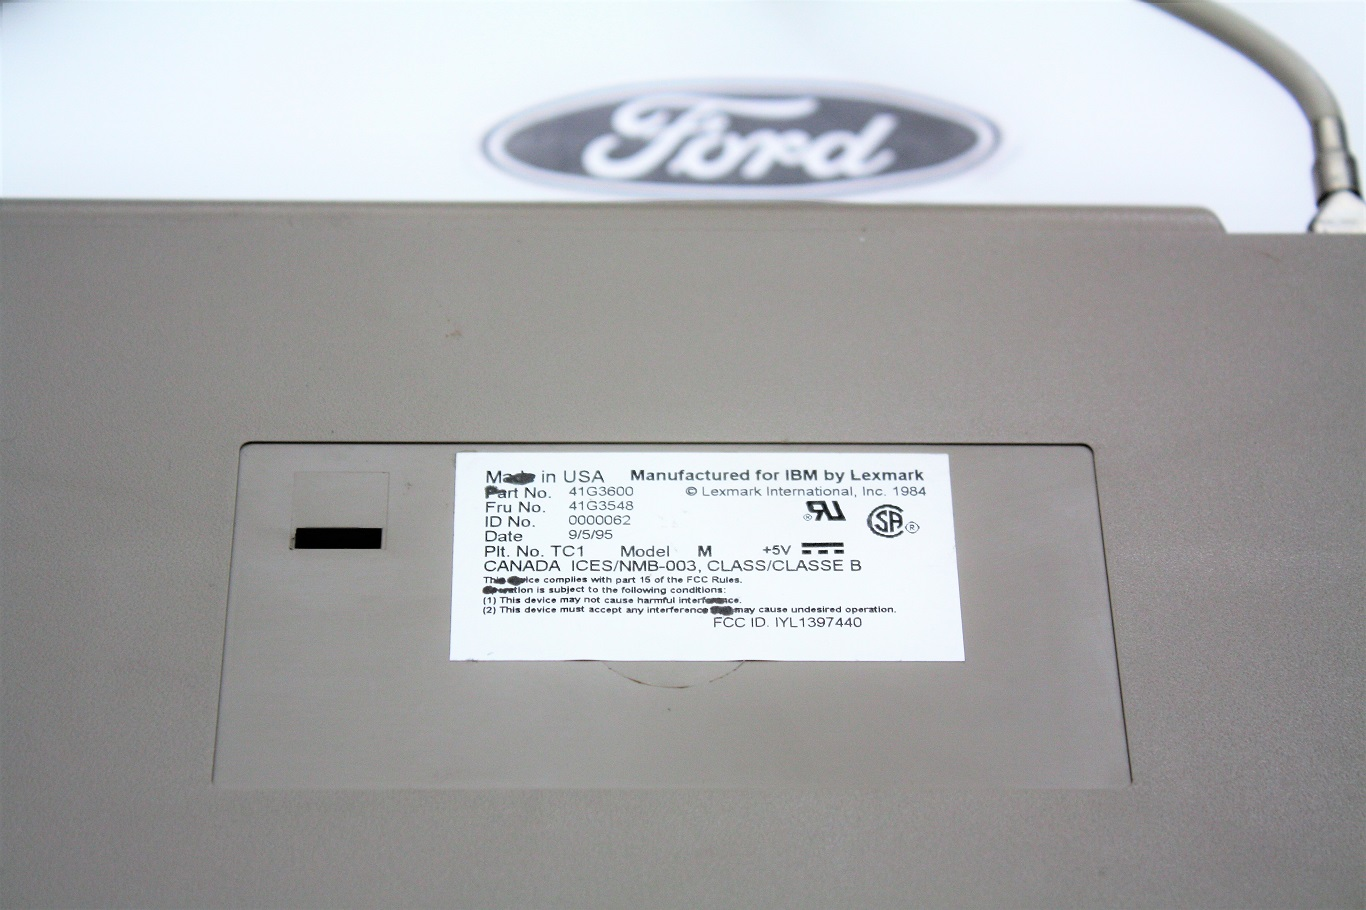 IBM INDY SSK - Ford Lexmark 41G3600 rear label.JPG